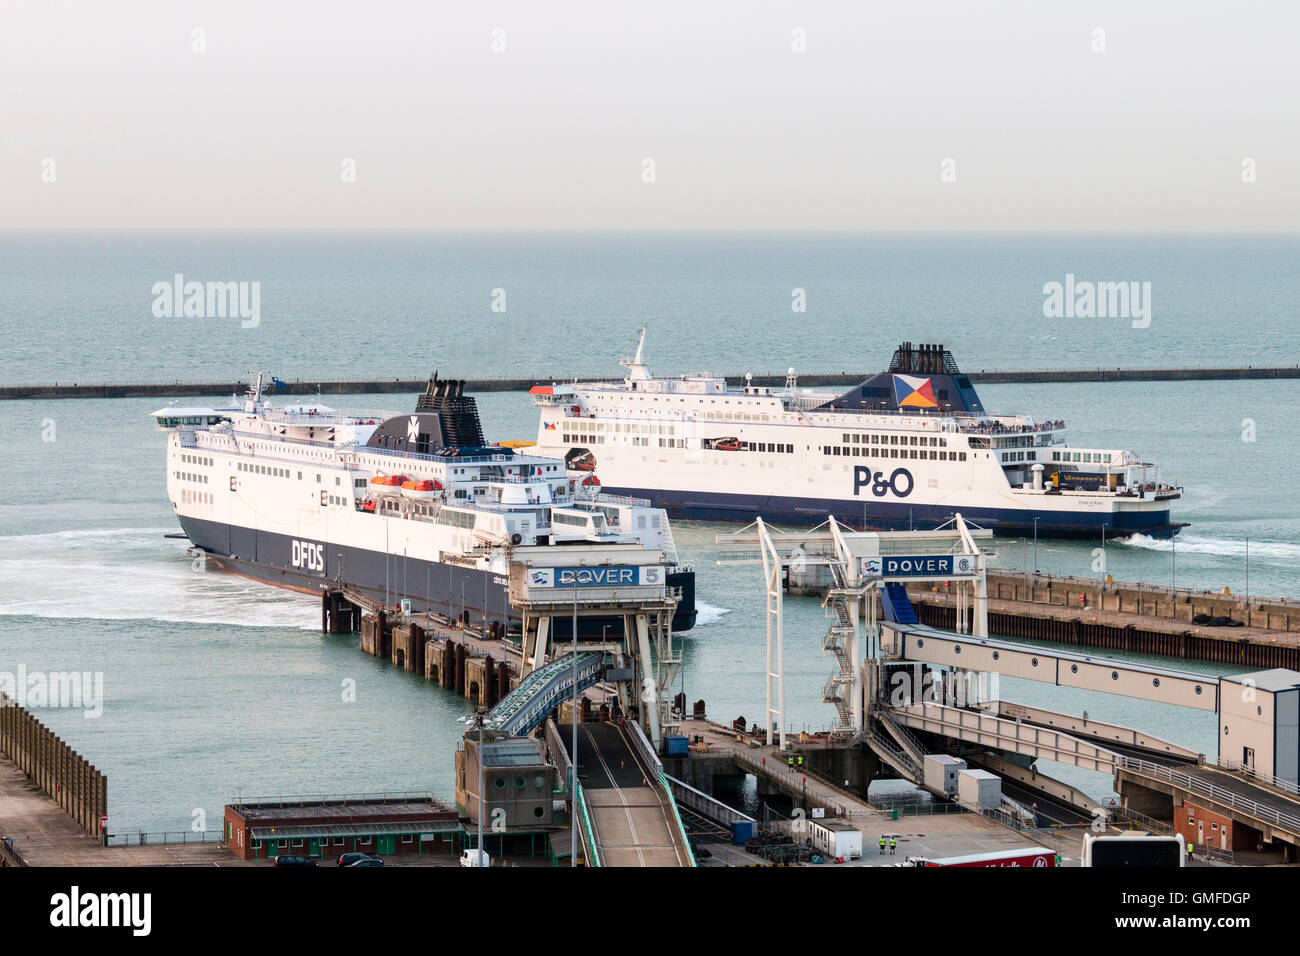 England, Dover, port. Two Car Ferries, one, DFDS docking at Dover Ferry terminal, the other, P&O, departing, - Stock Image